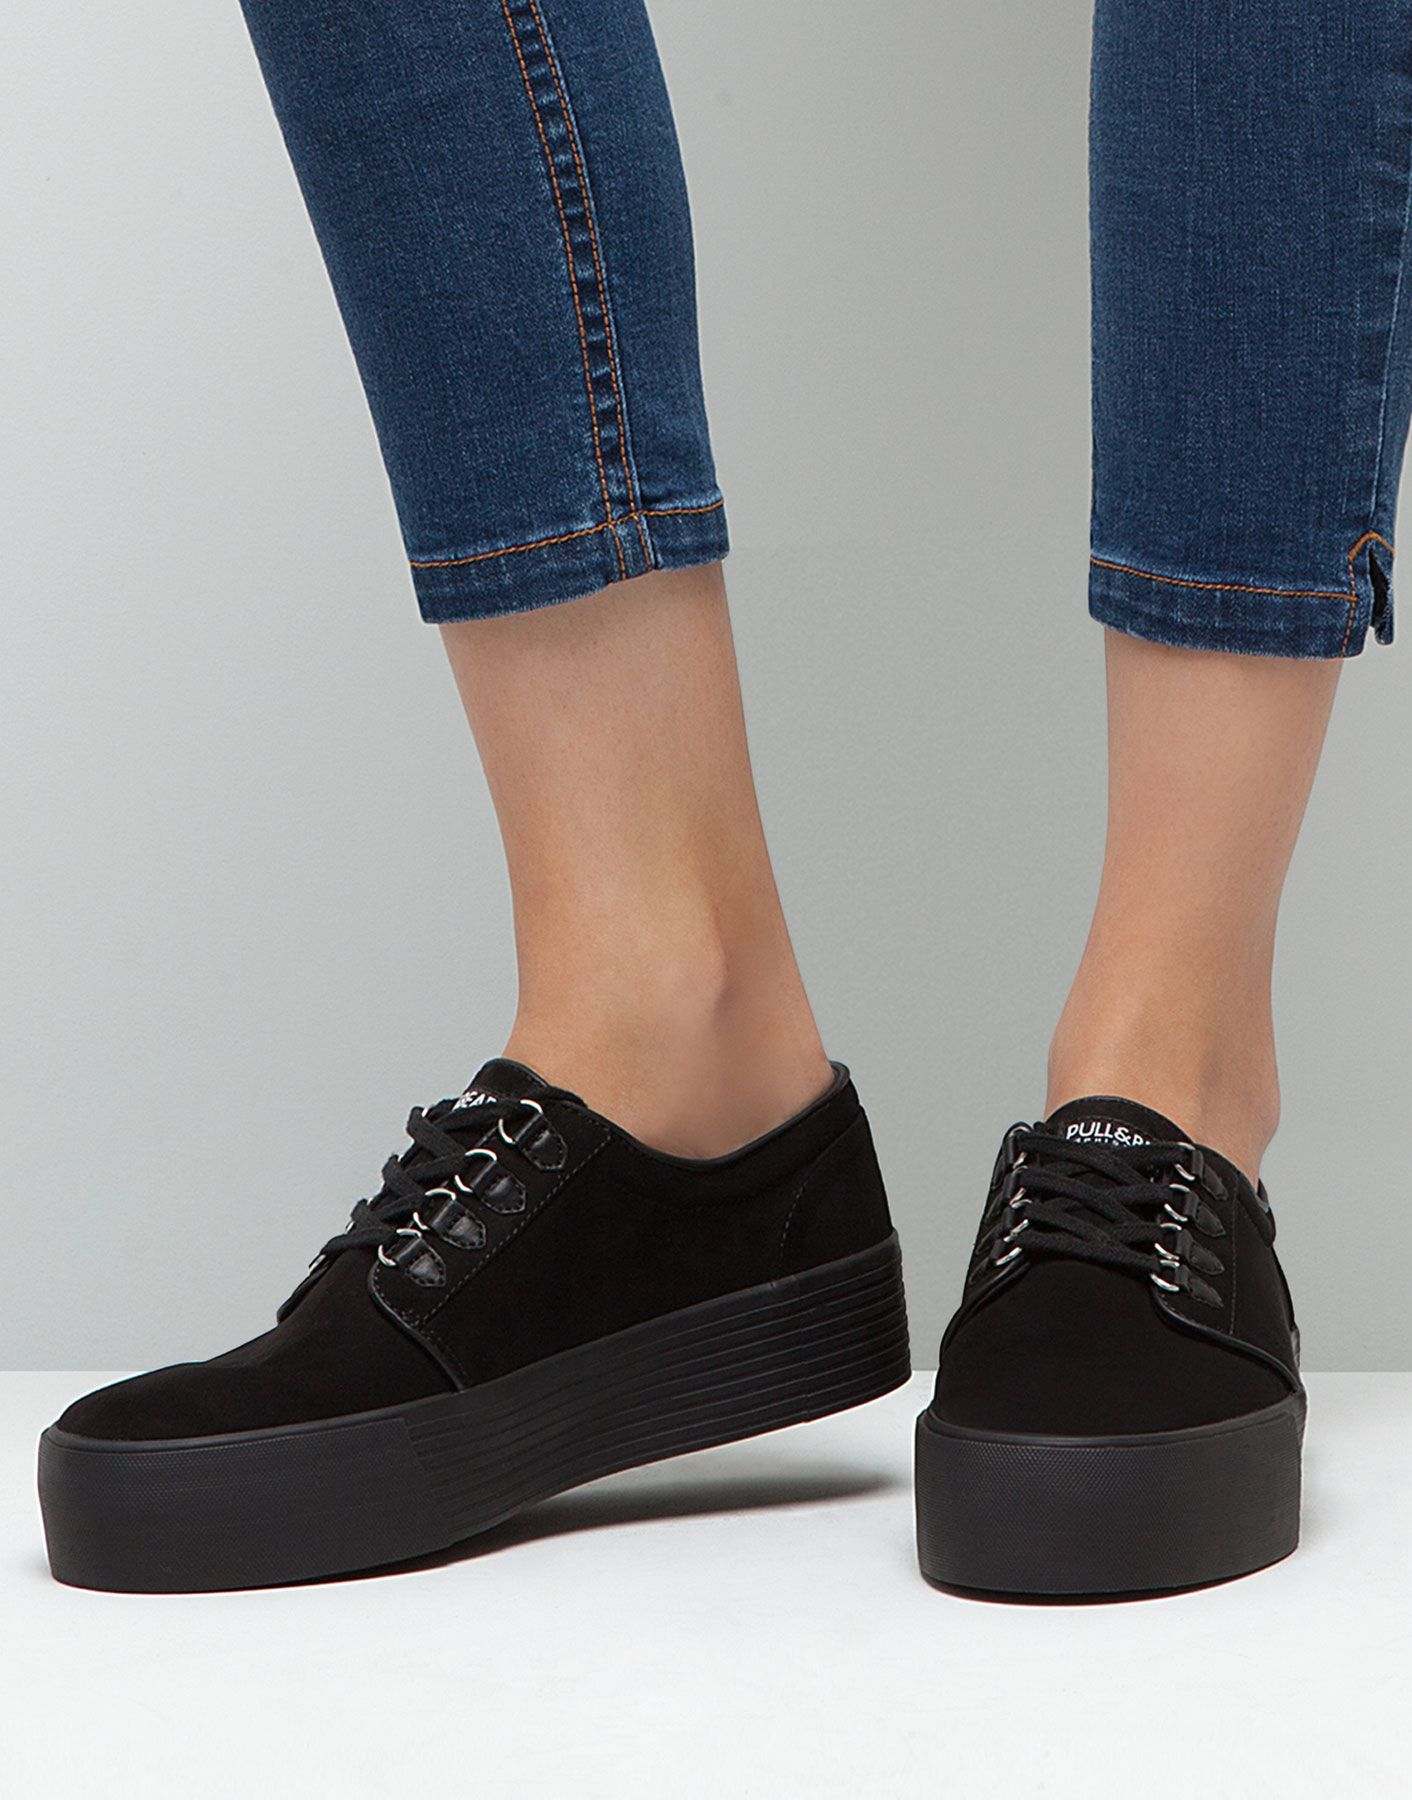 Bamba Bloque Urbana Zapatos Mujer Mujer Pull Bear Espana Outfit Shoes Tennis Shoes Outfit Casual Shoes